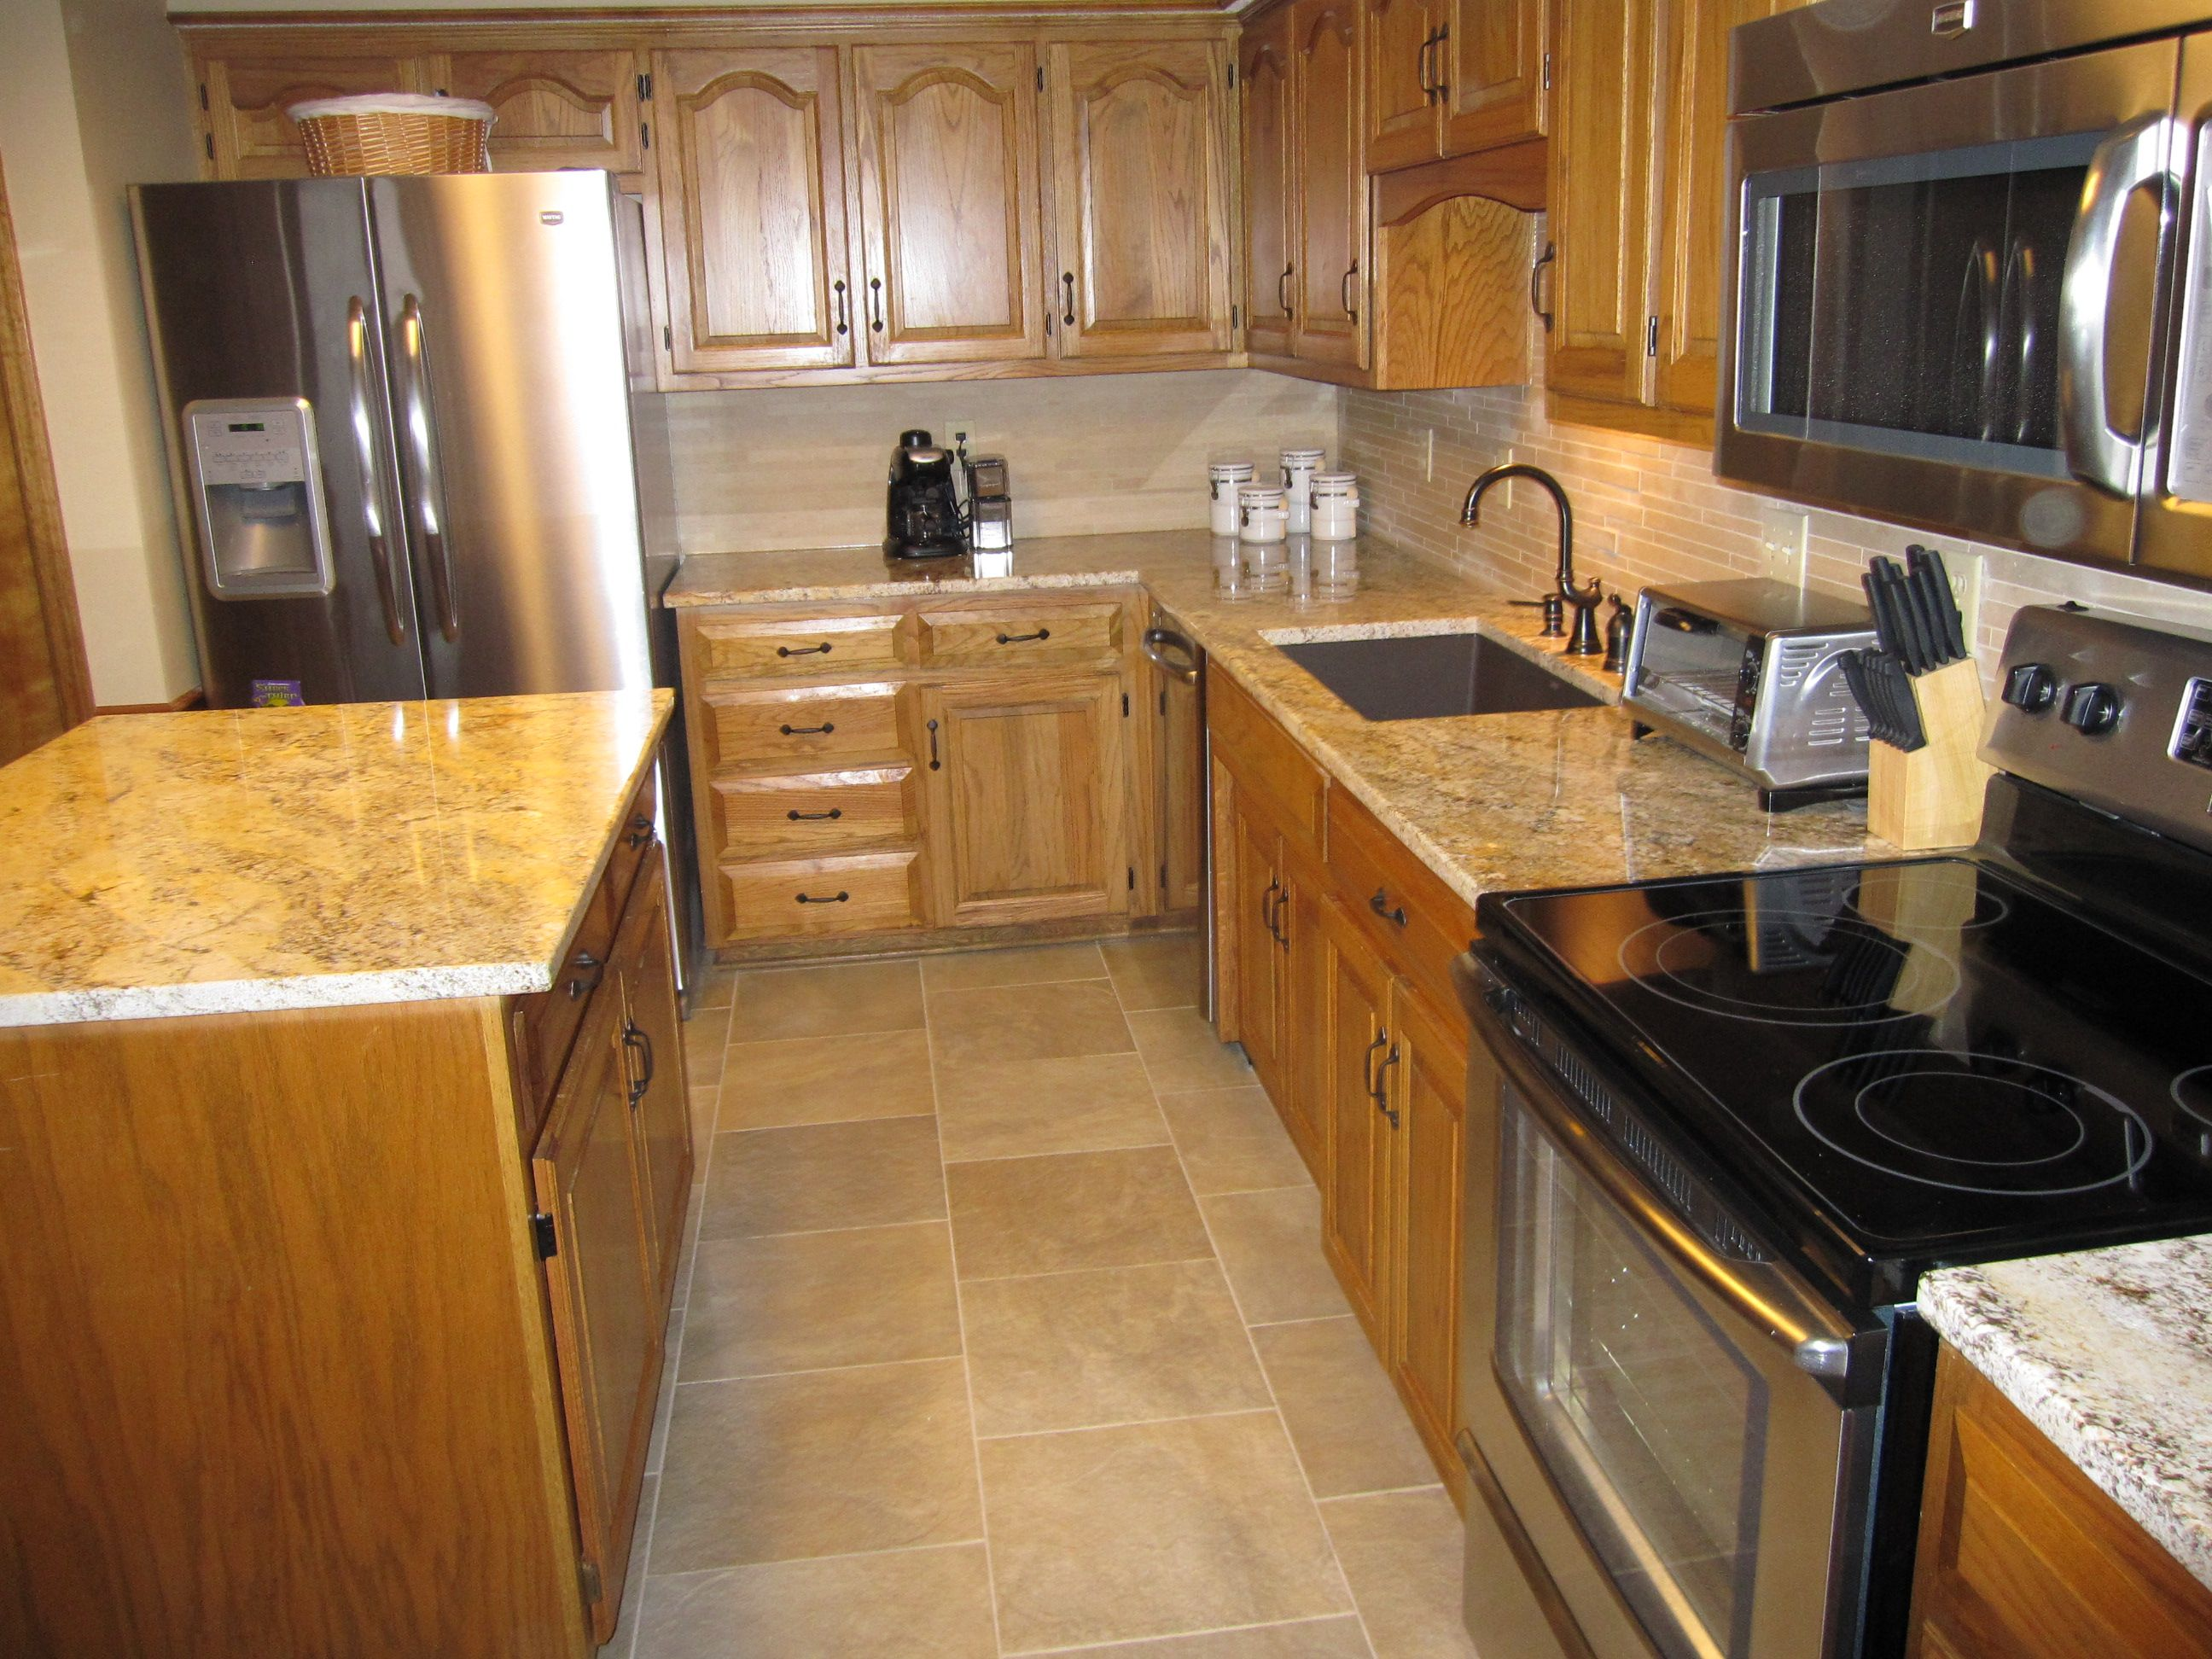 Kitchen Faucets For Granite Countertops Simple Update To Kitchen With S S Appliances Refinished